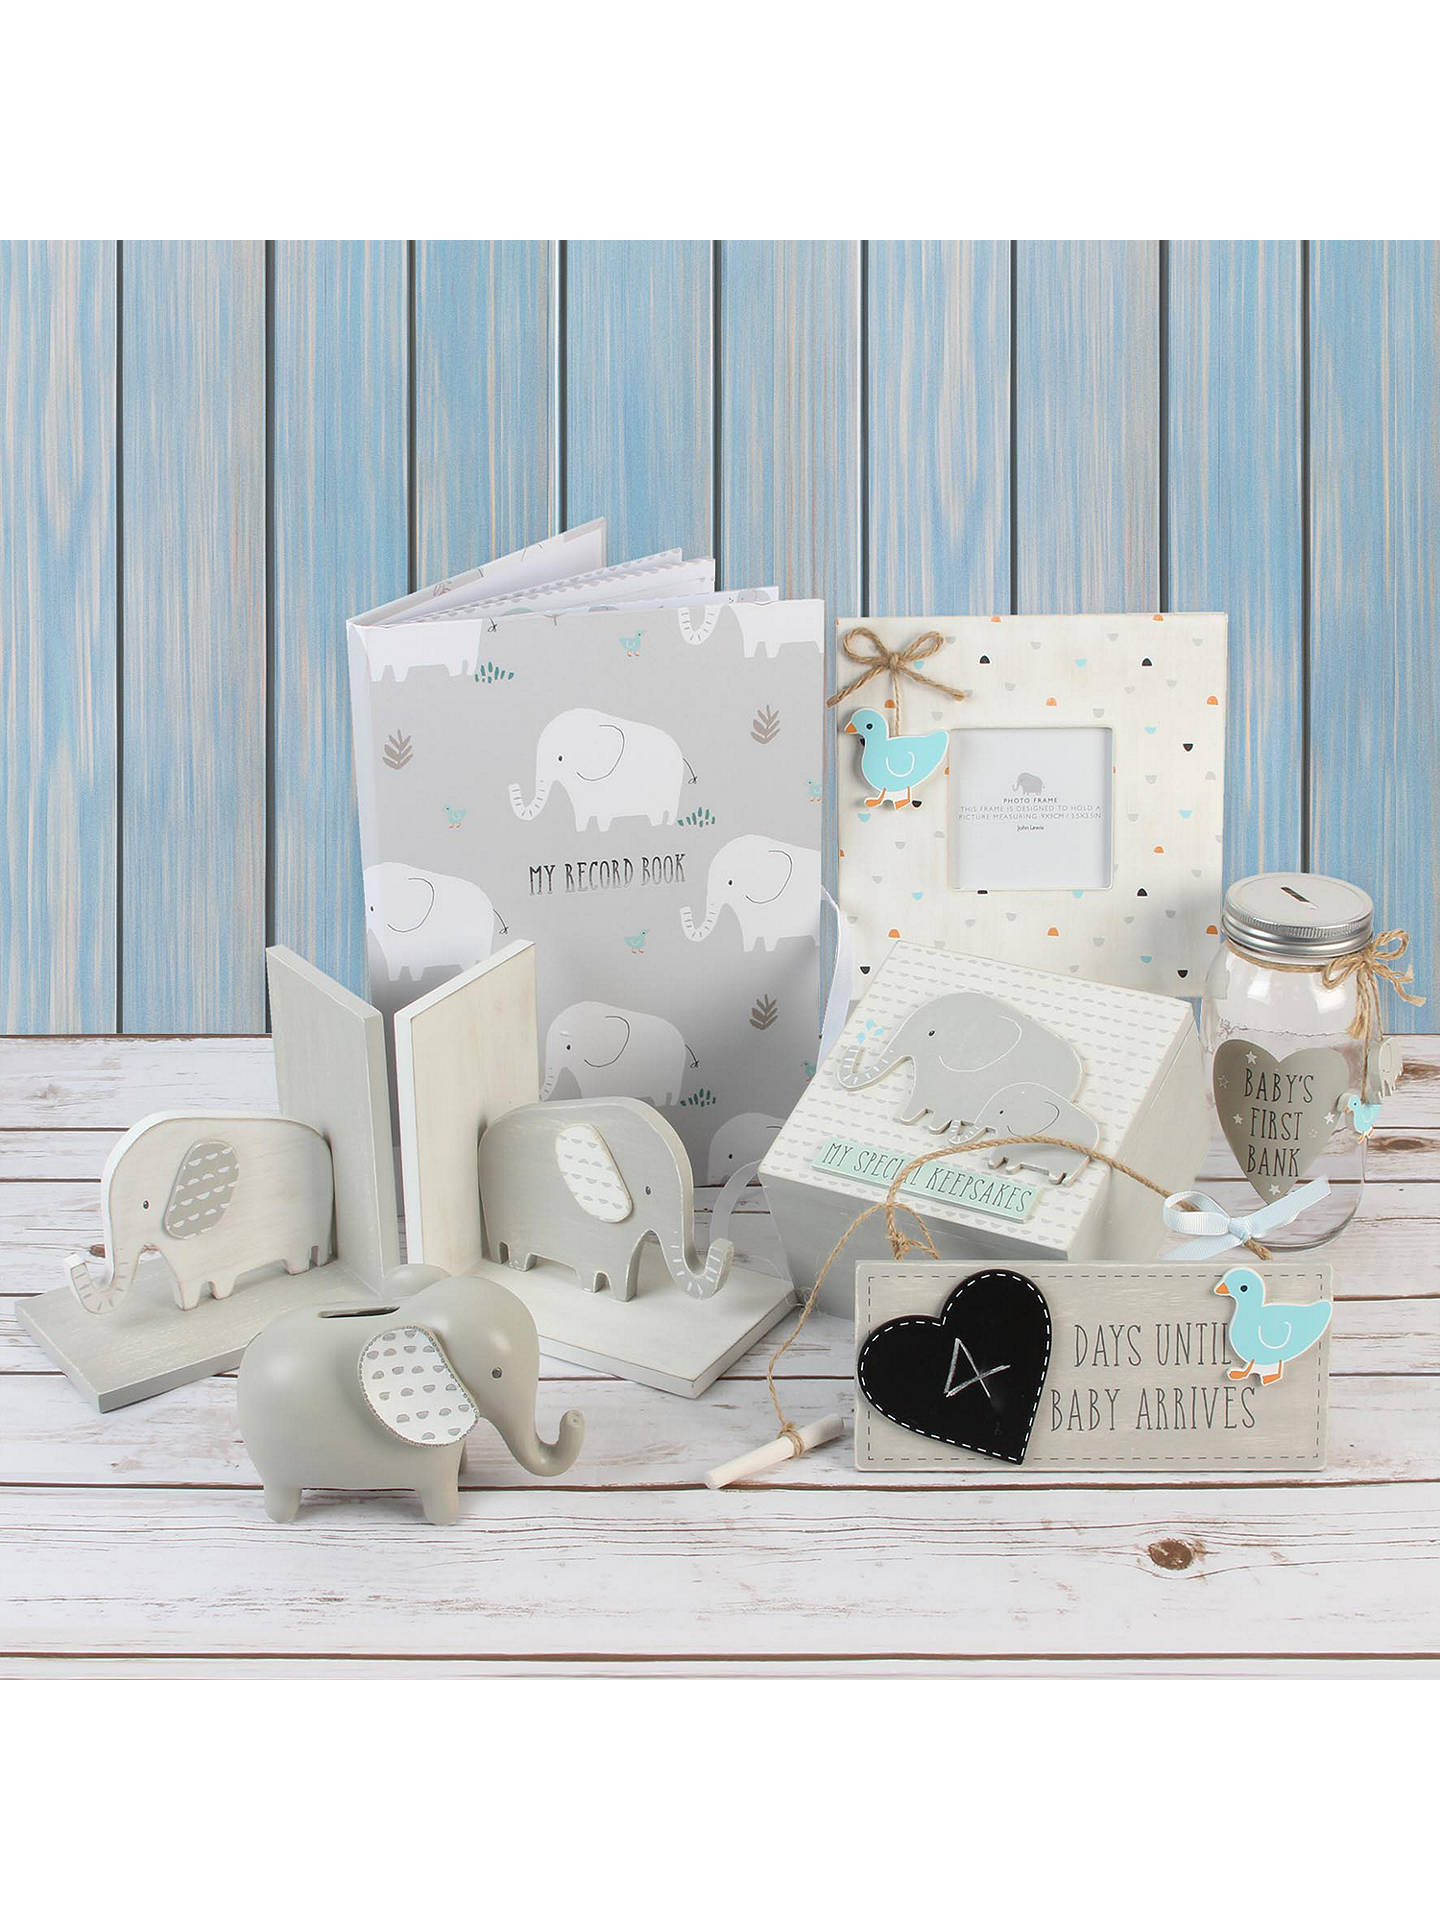 John lewis baby elephant record book at john lewis partners for John lewis home design service reviews